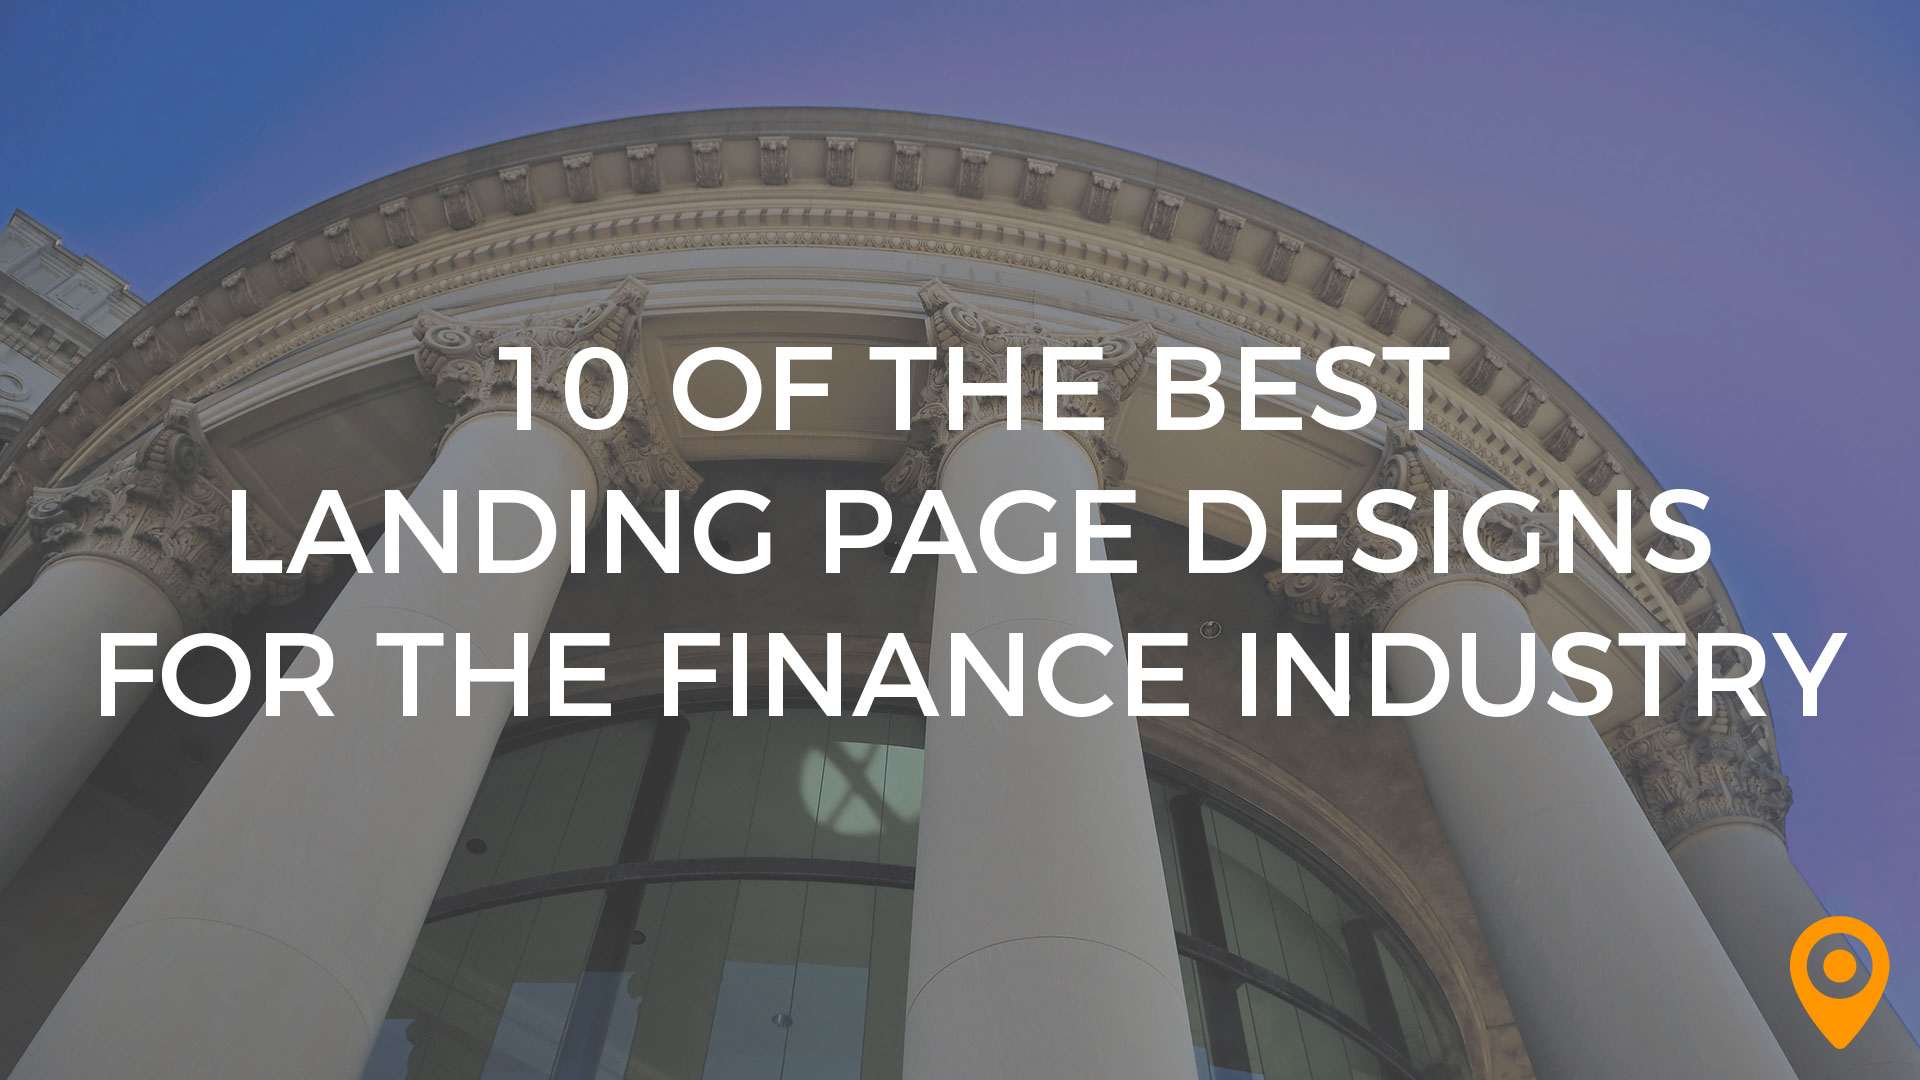 Best Landing Page Designs for the Finance Industry